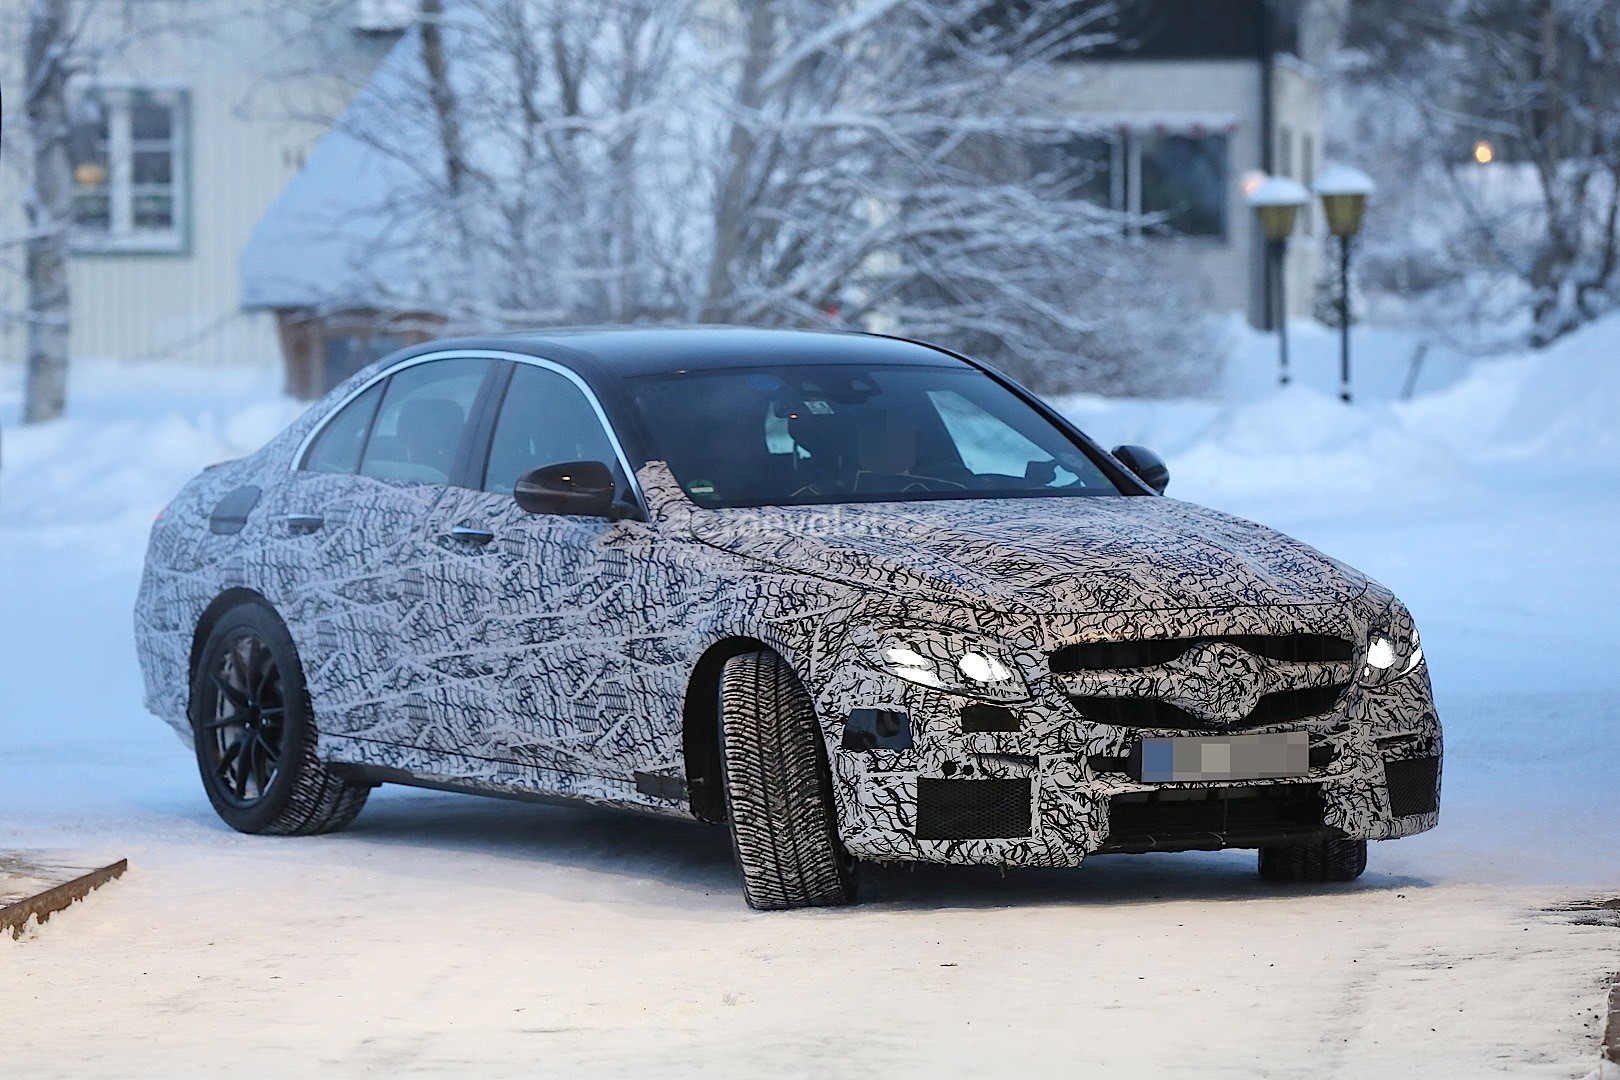 2017 mercedes amg e63 spied melting snow near the arctic. Black Bedroom Furniture Sets. Home Design Ideas